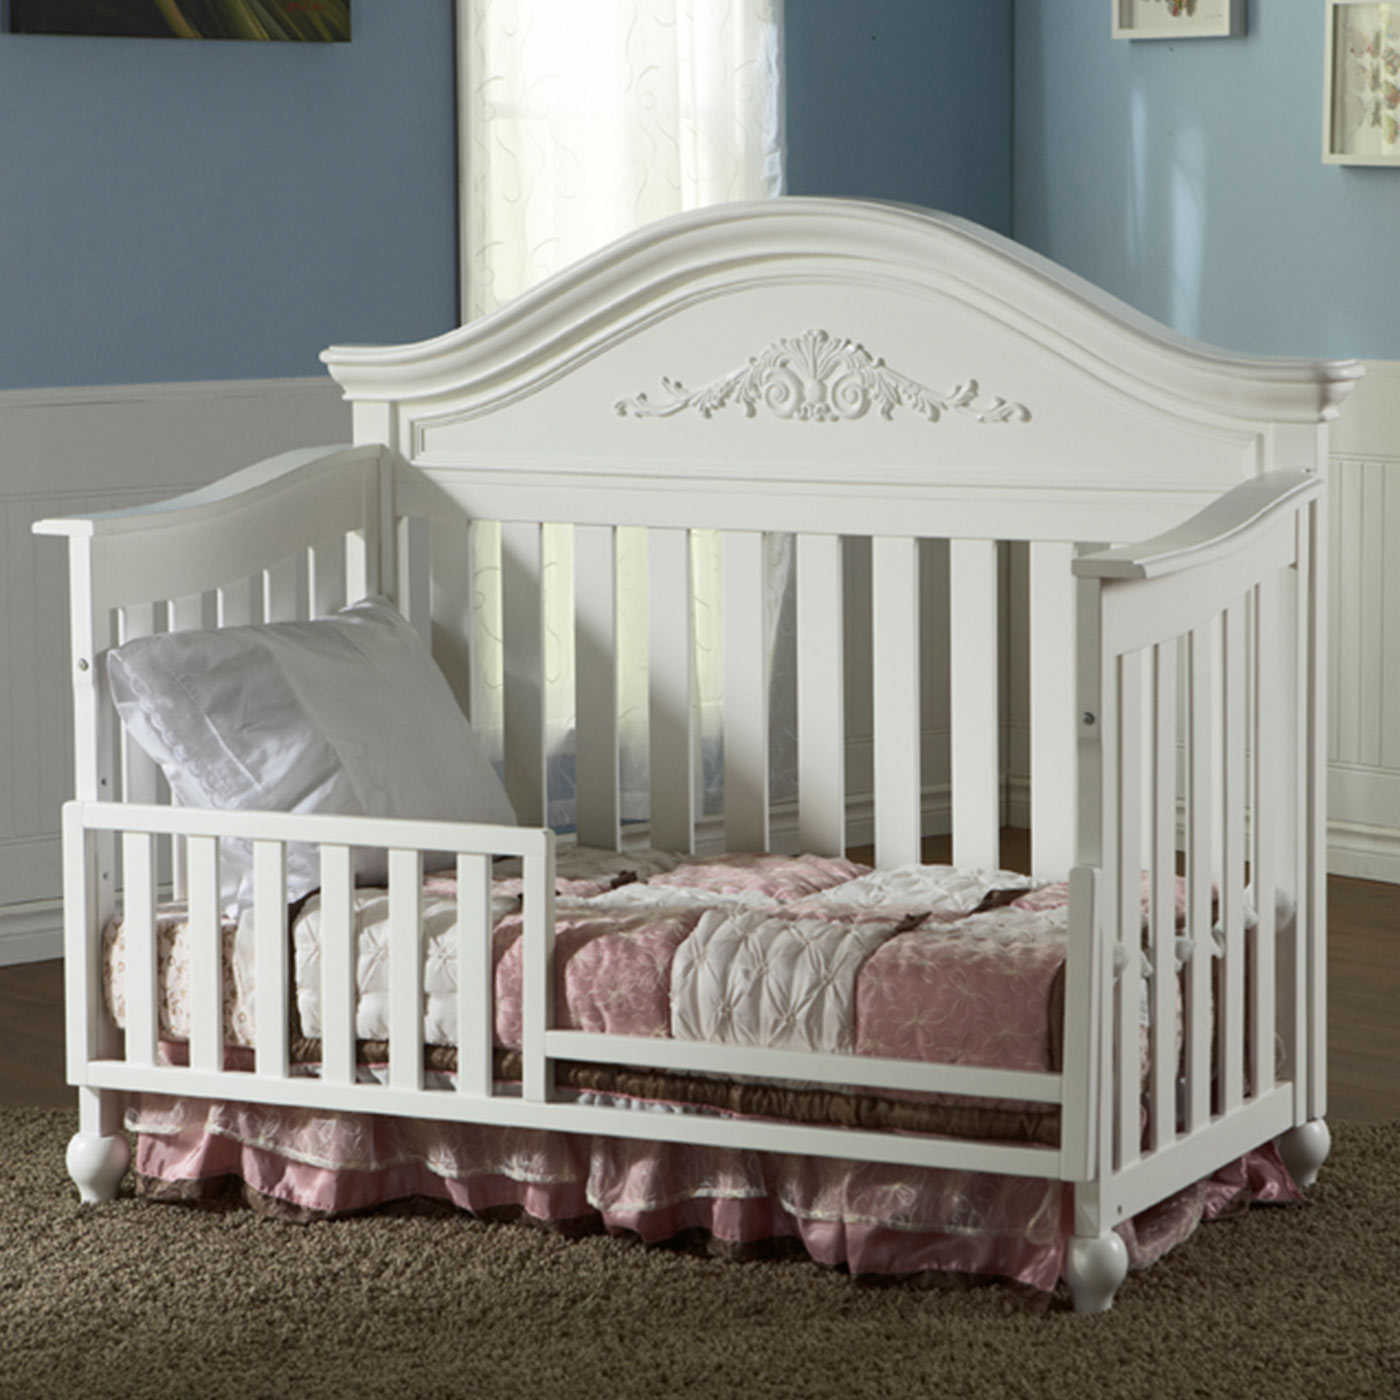 Pali crib for sale used - Pali Crib For Sale Used 2